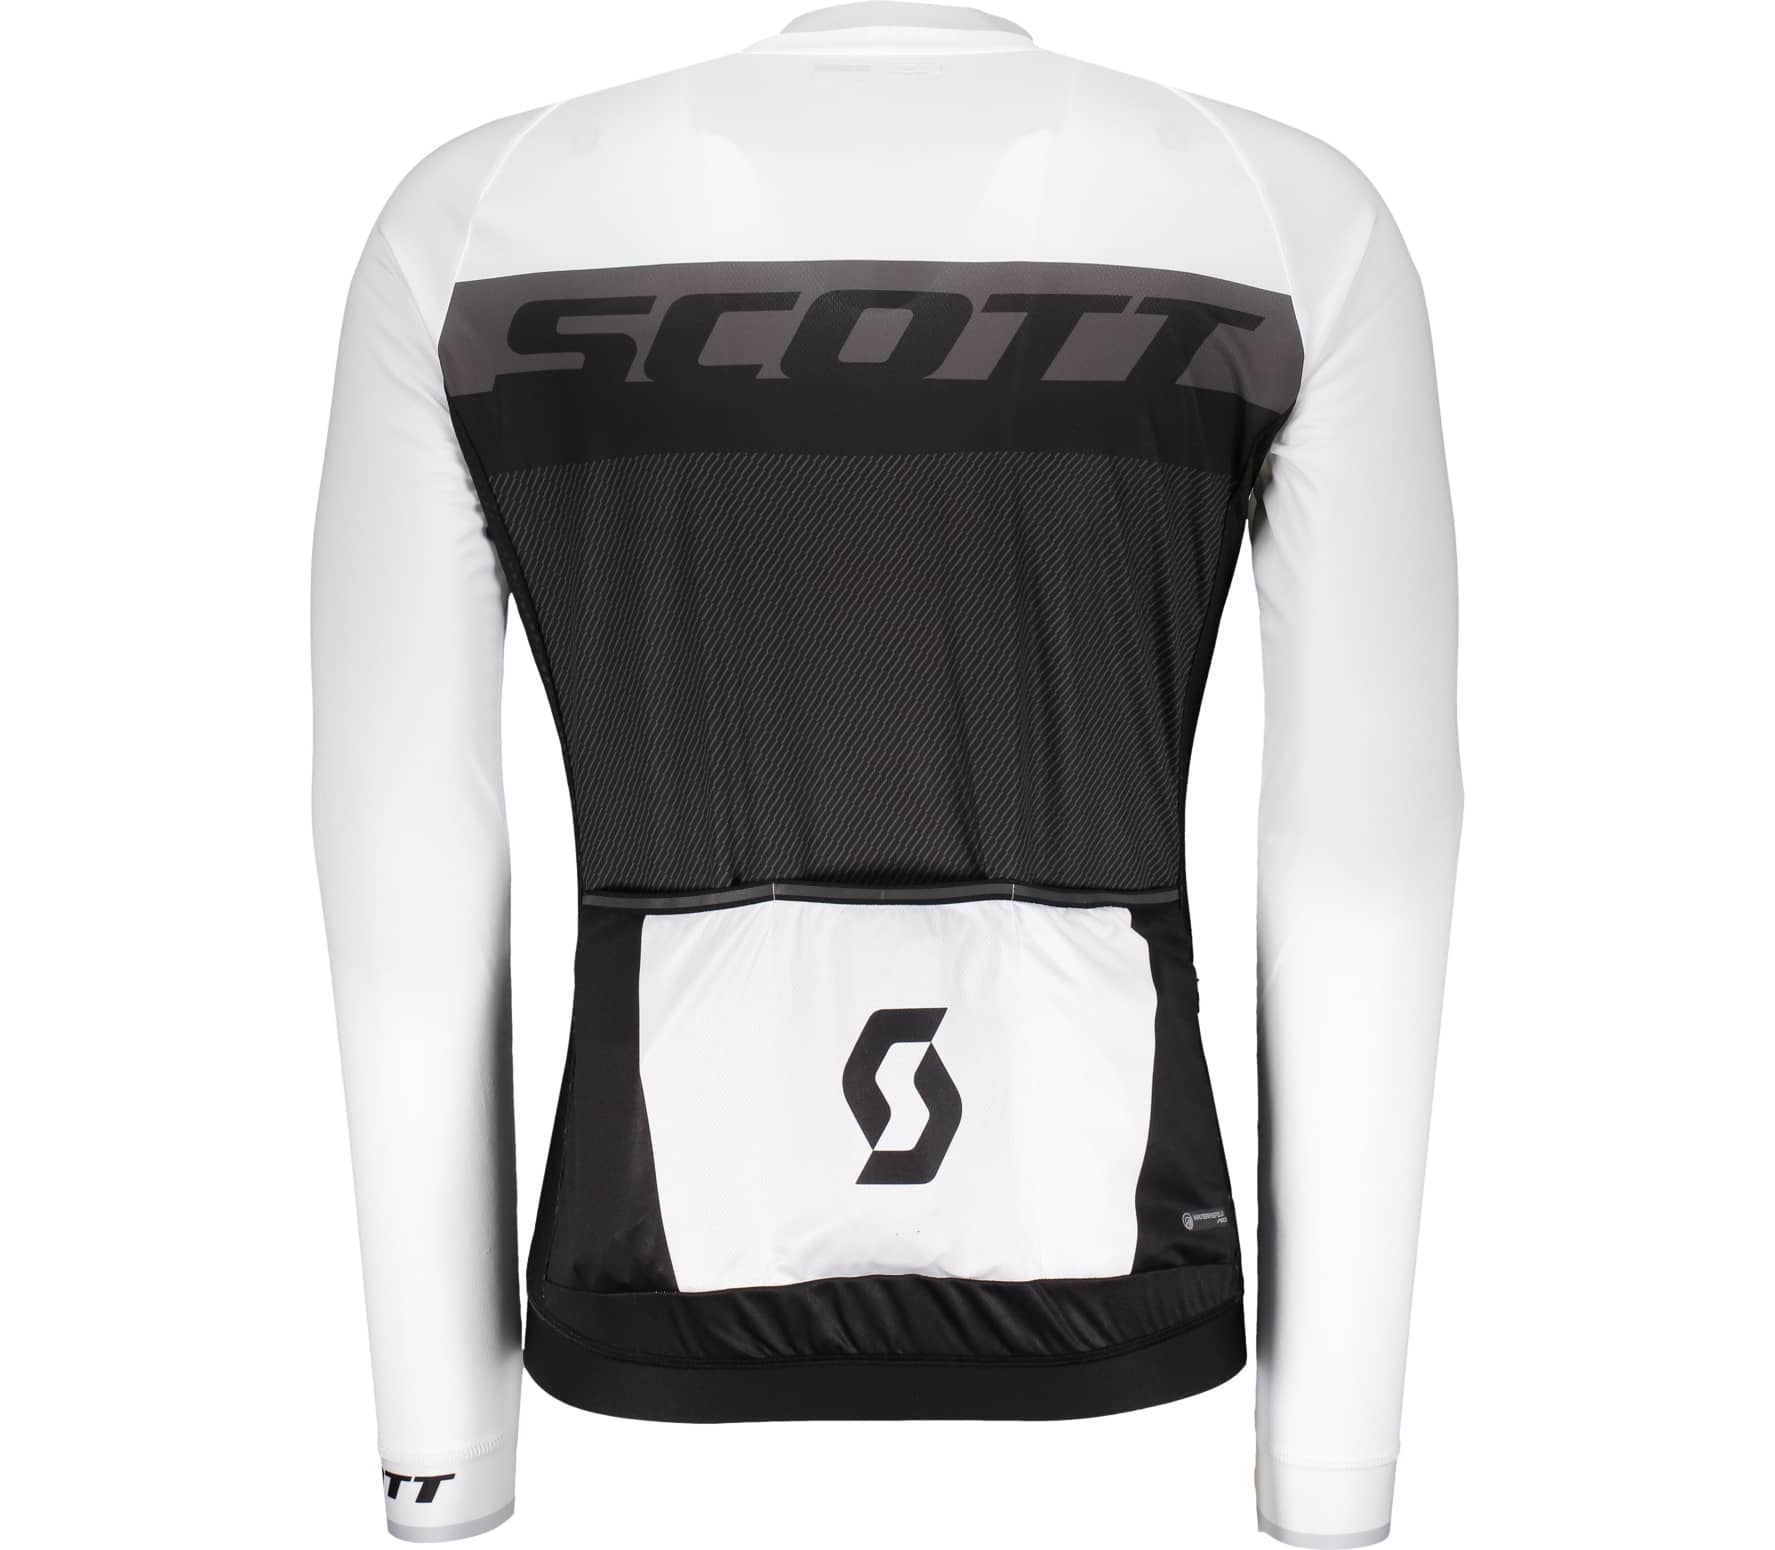 Scott - RC Pro long-sleeved men s Bike top (black white) - buy it at ... d0c9f7d84